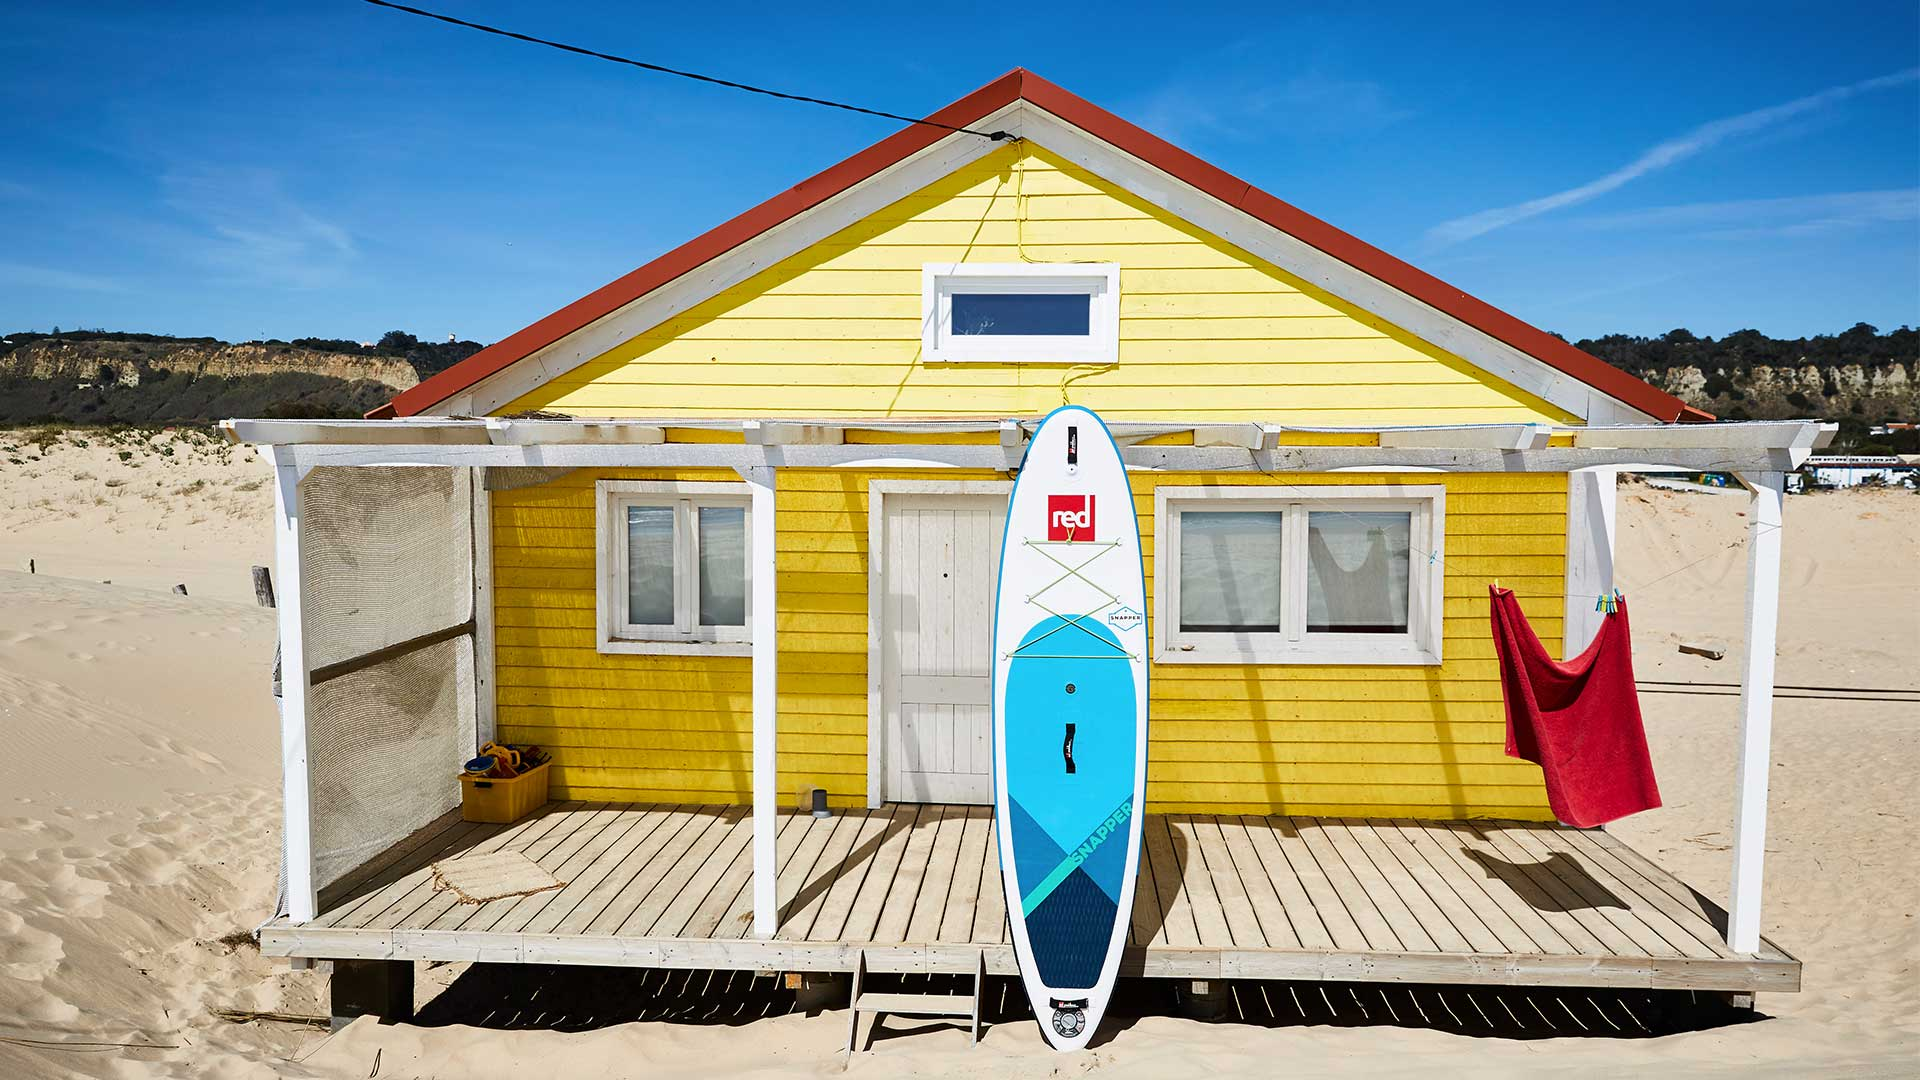 redpaddleco-94-snapper-inflatable-paddle-board-desktop-gallery-2